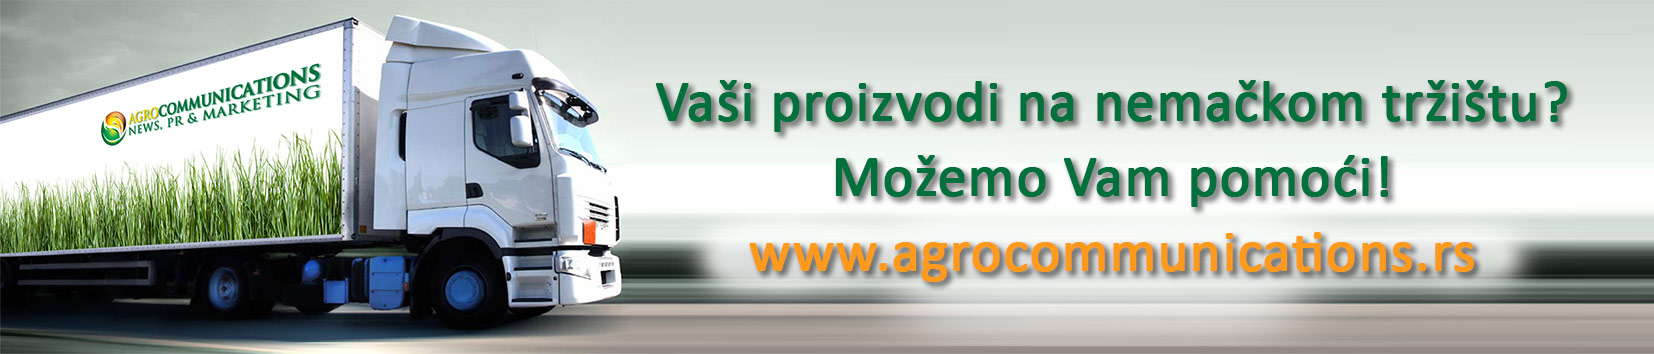 http://www.agrocommunications.rs